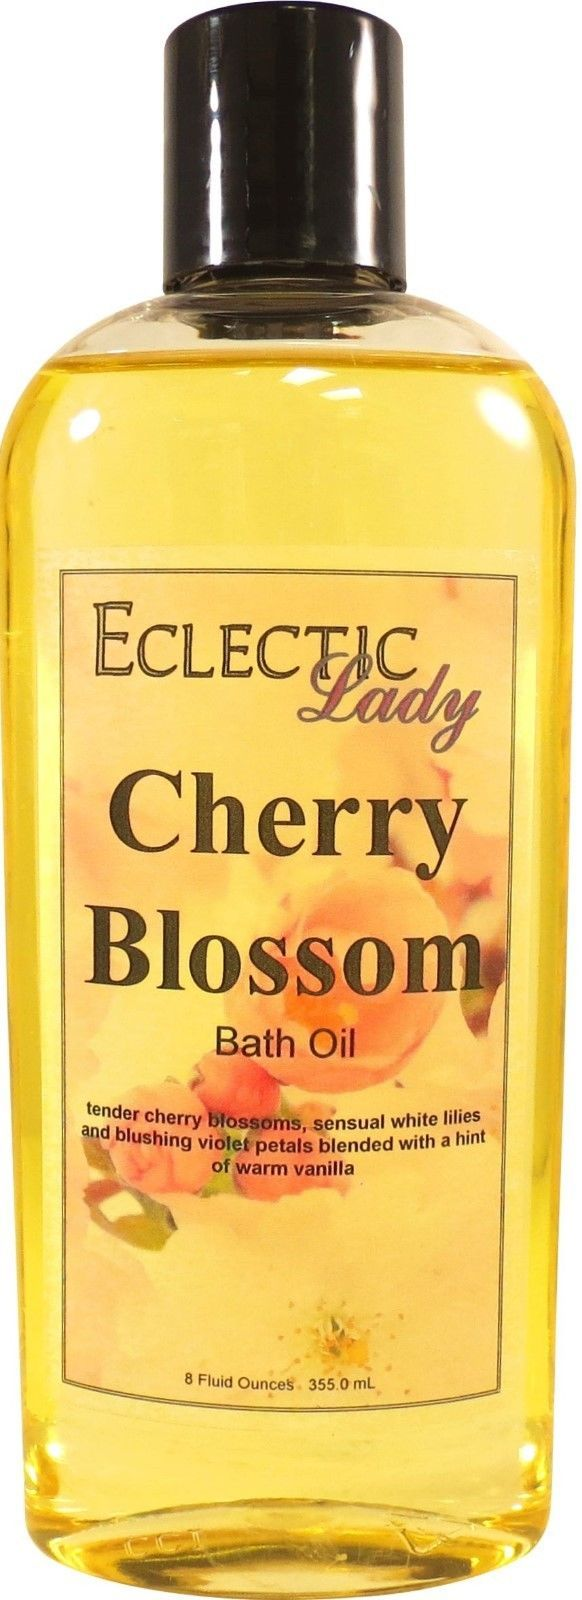 Cherry Blossom Bath Oil